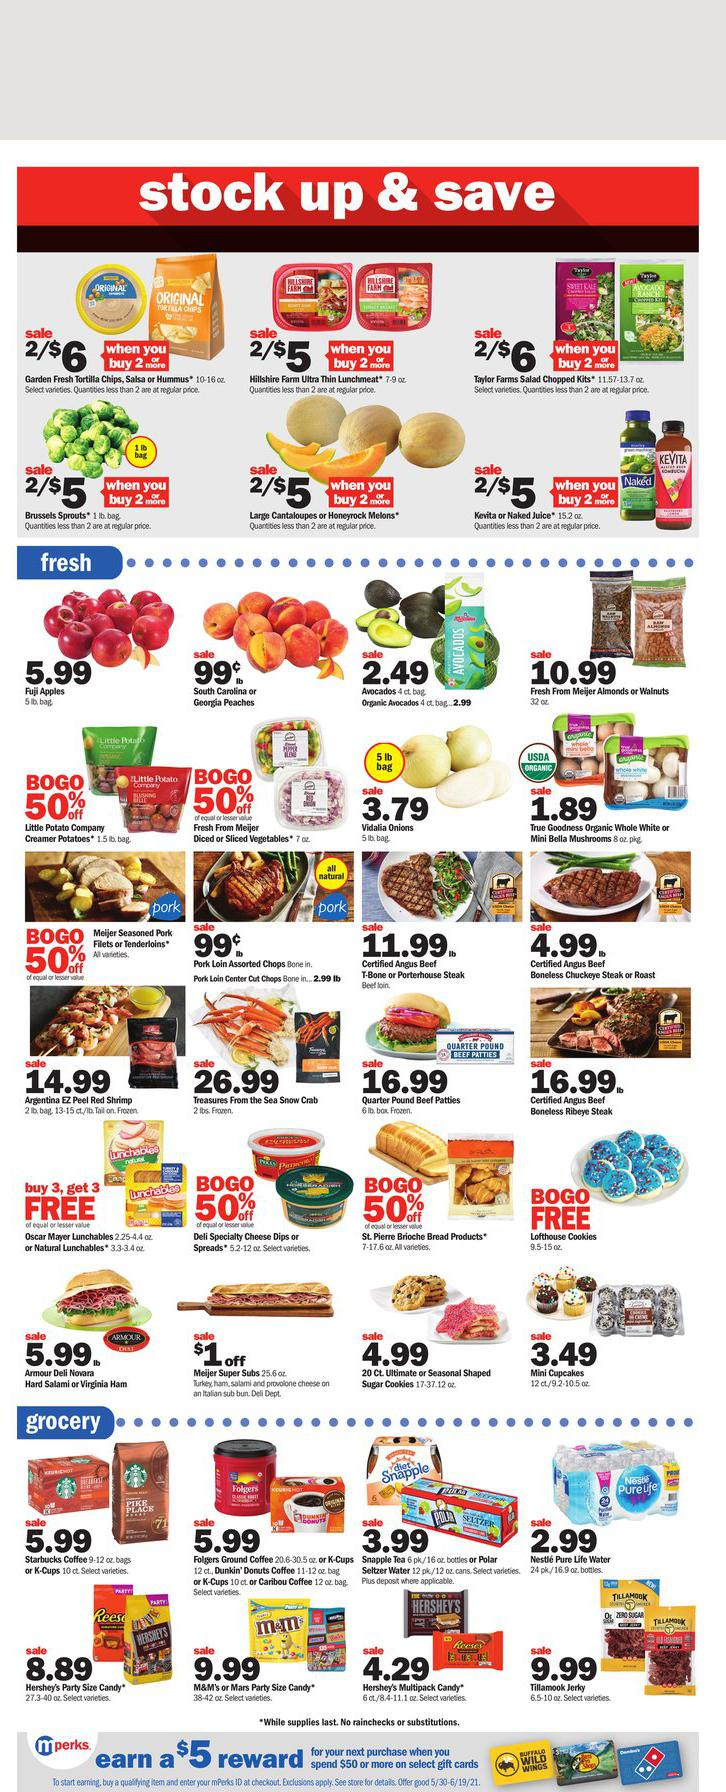 06.06.2021 Meijer ad 2. page